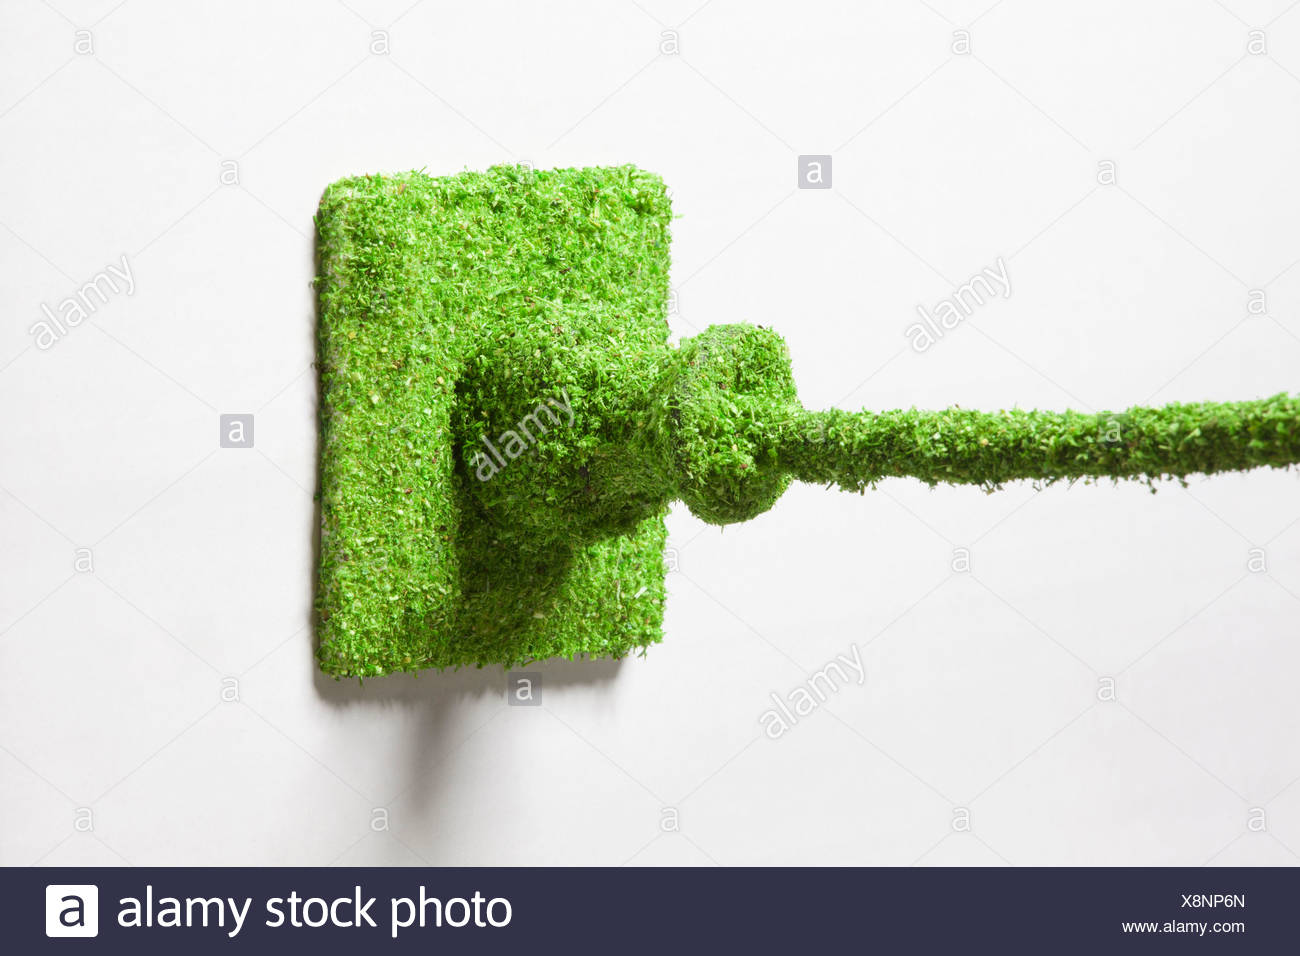 Power outlet covered with grass against white background - Stock Image